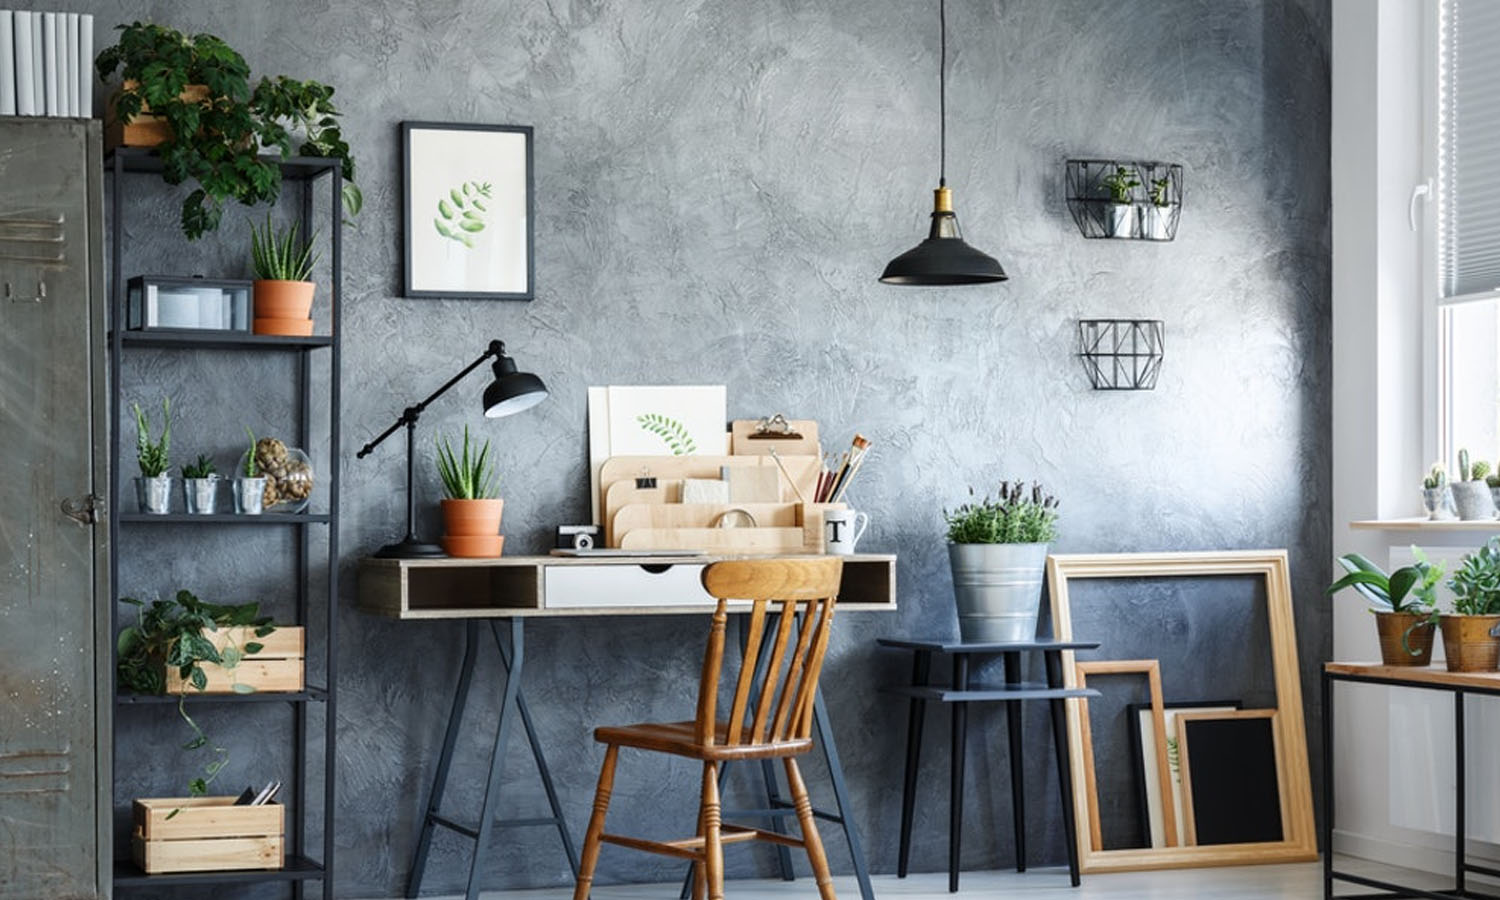 Décor Ideas for Small Office